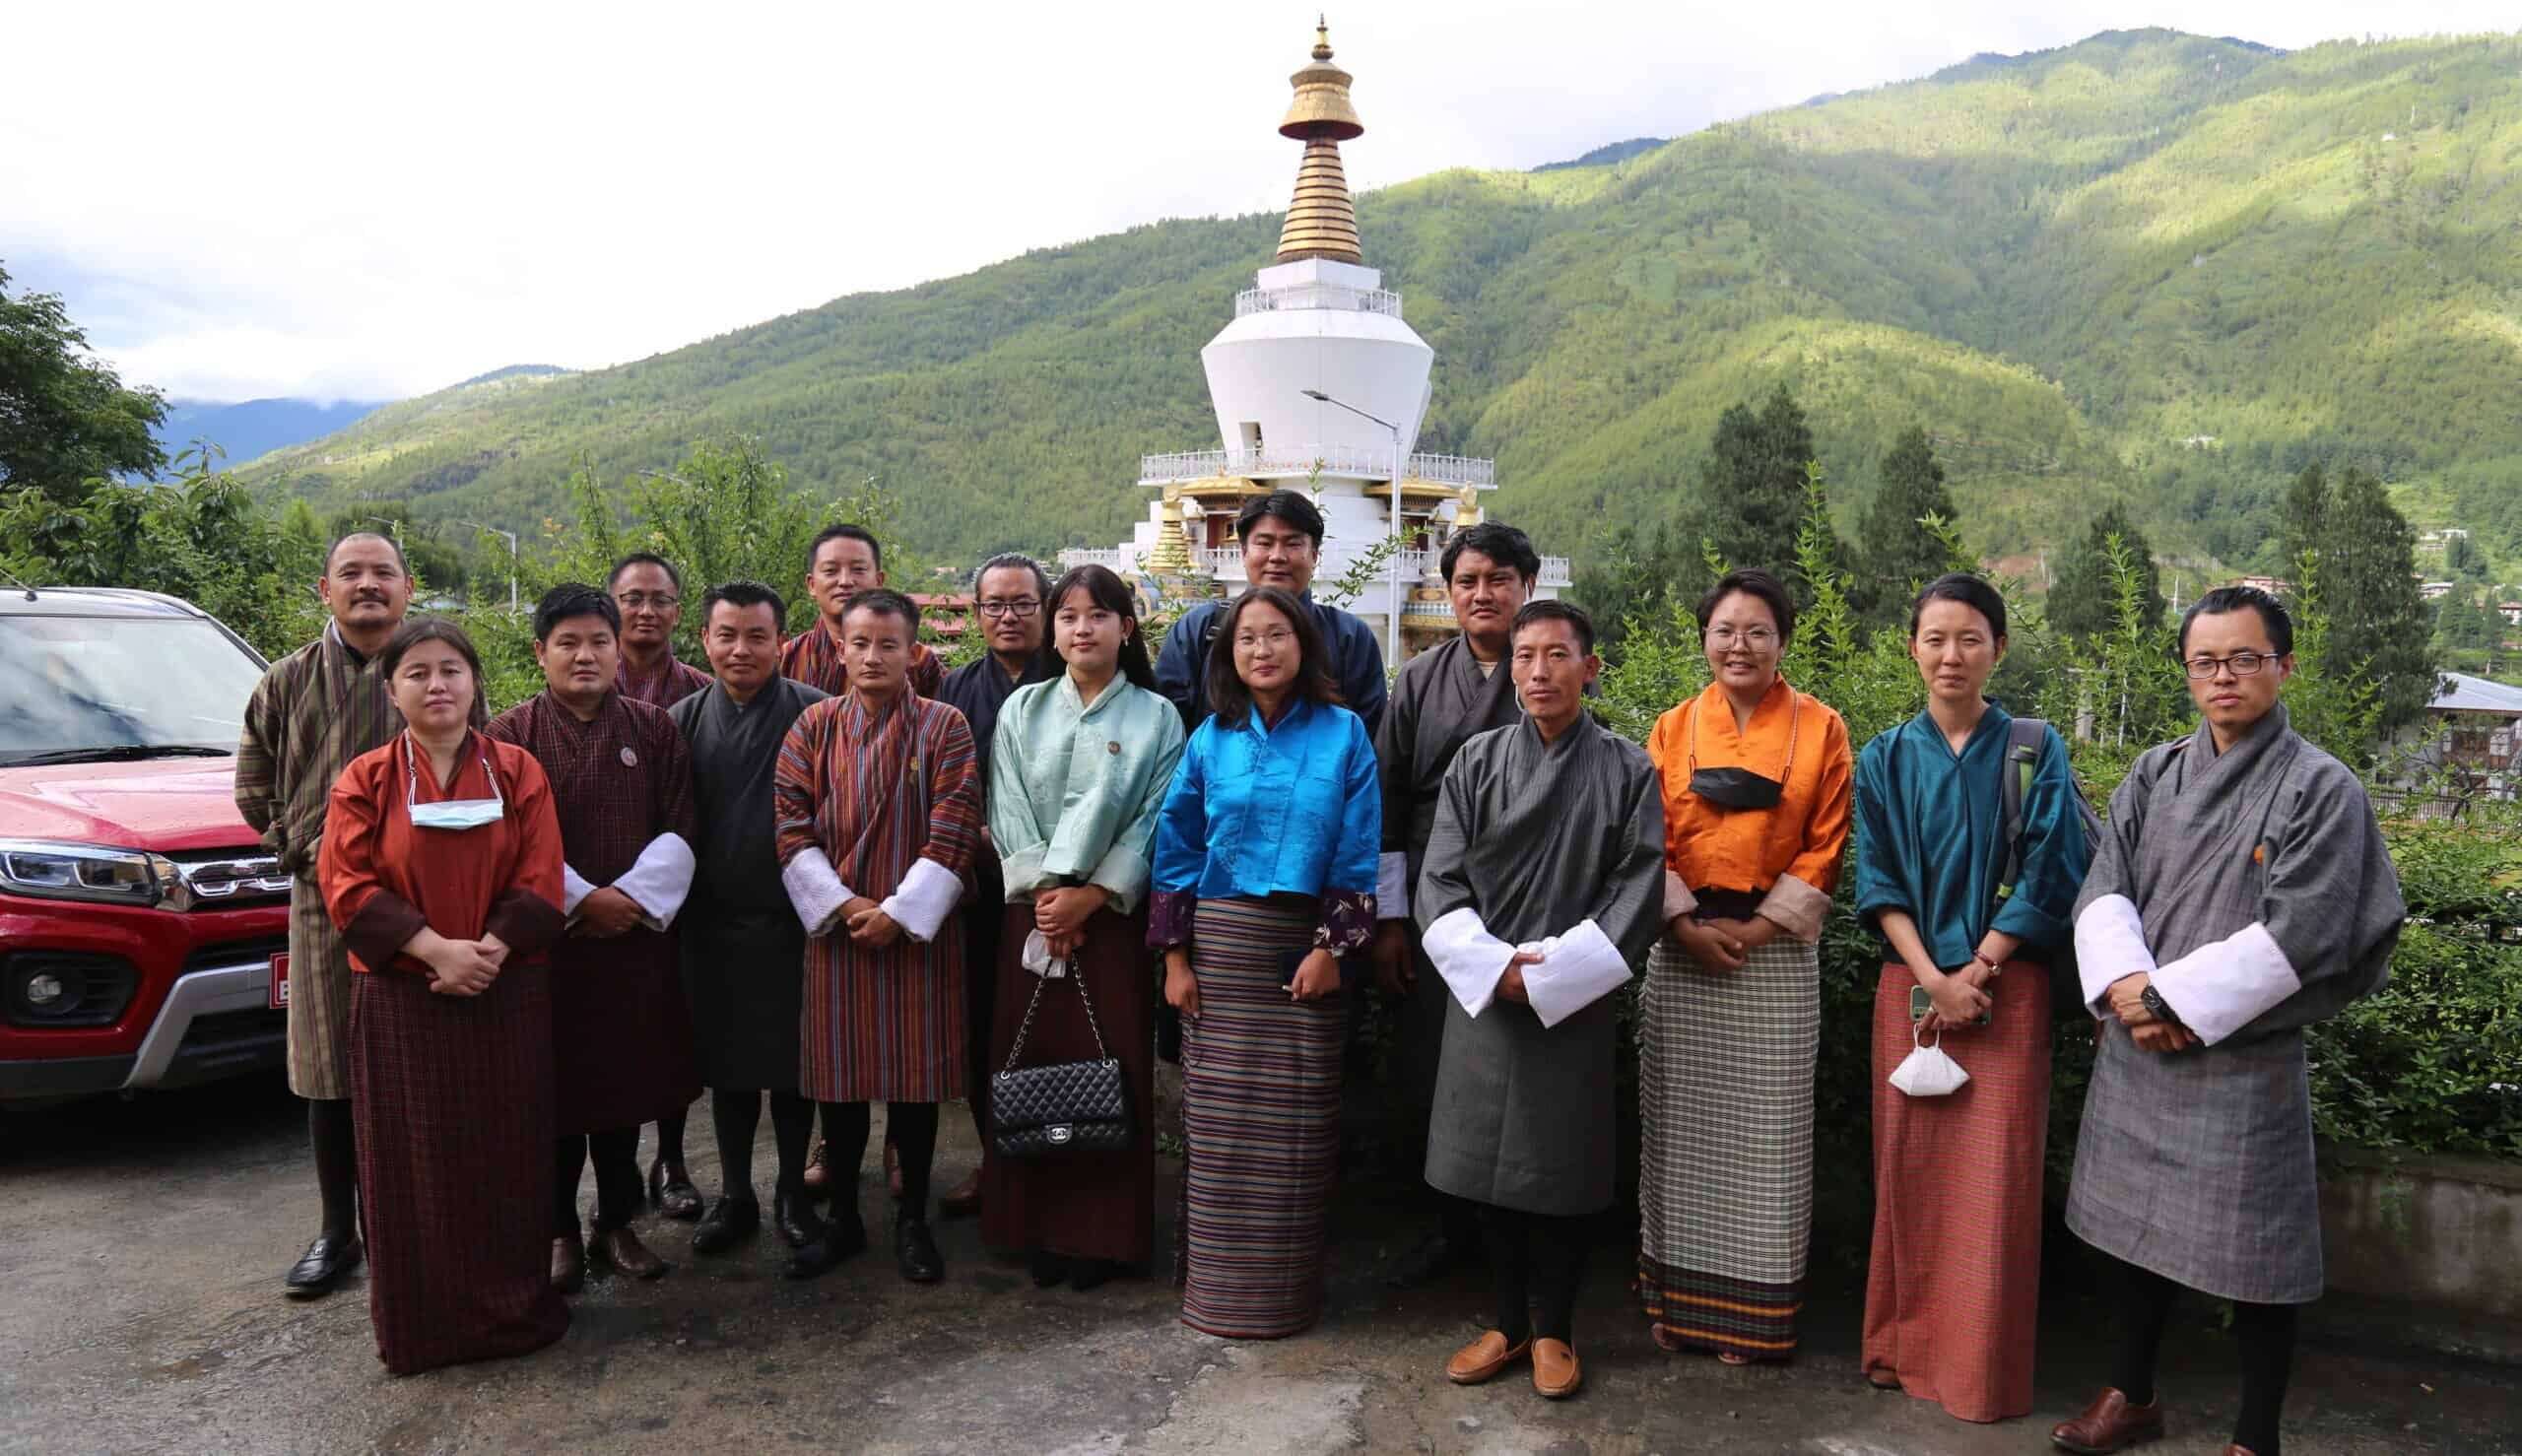 A group of people stand together posing with a temple and green hills behind them.